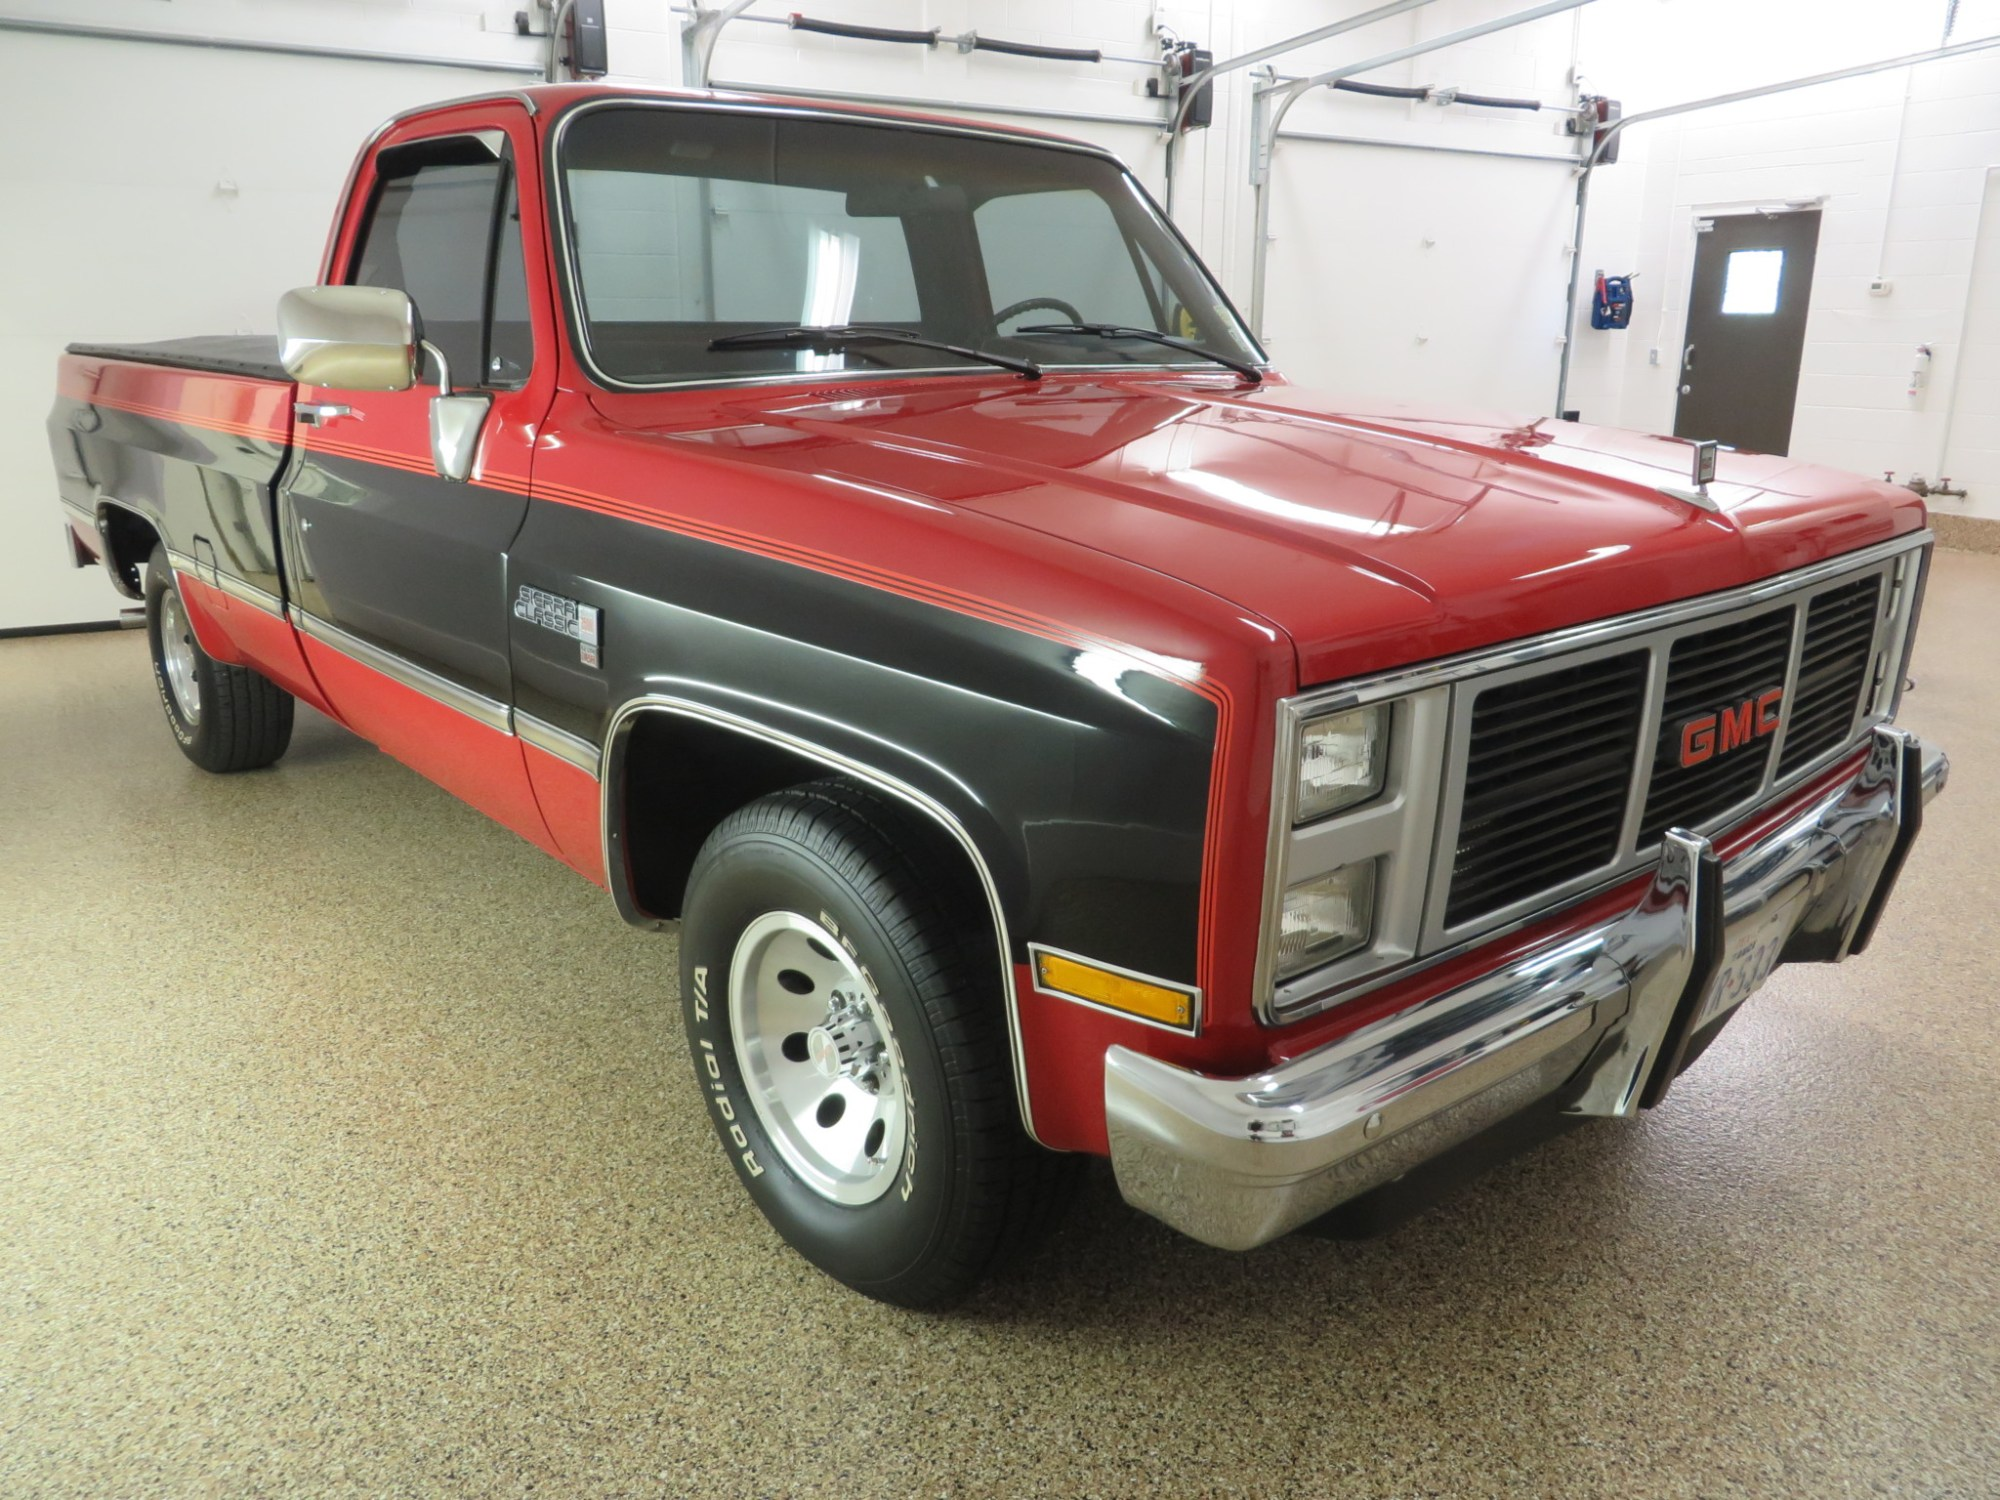 hight resolution of 1985 gmc sierra classic diesel for sale on bat auctions closed on september 6 2018 lot 12 166 bring a trailer